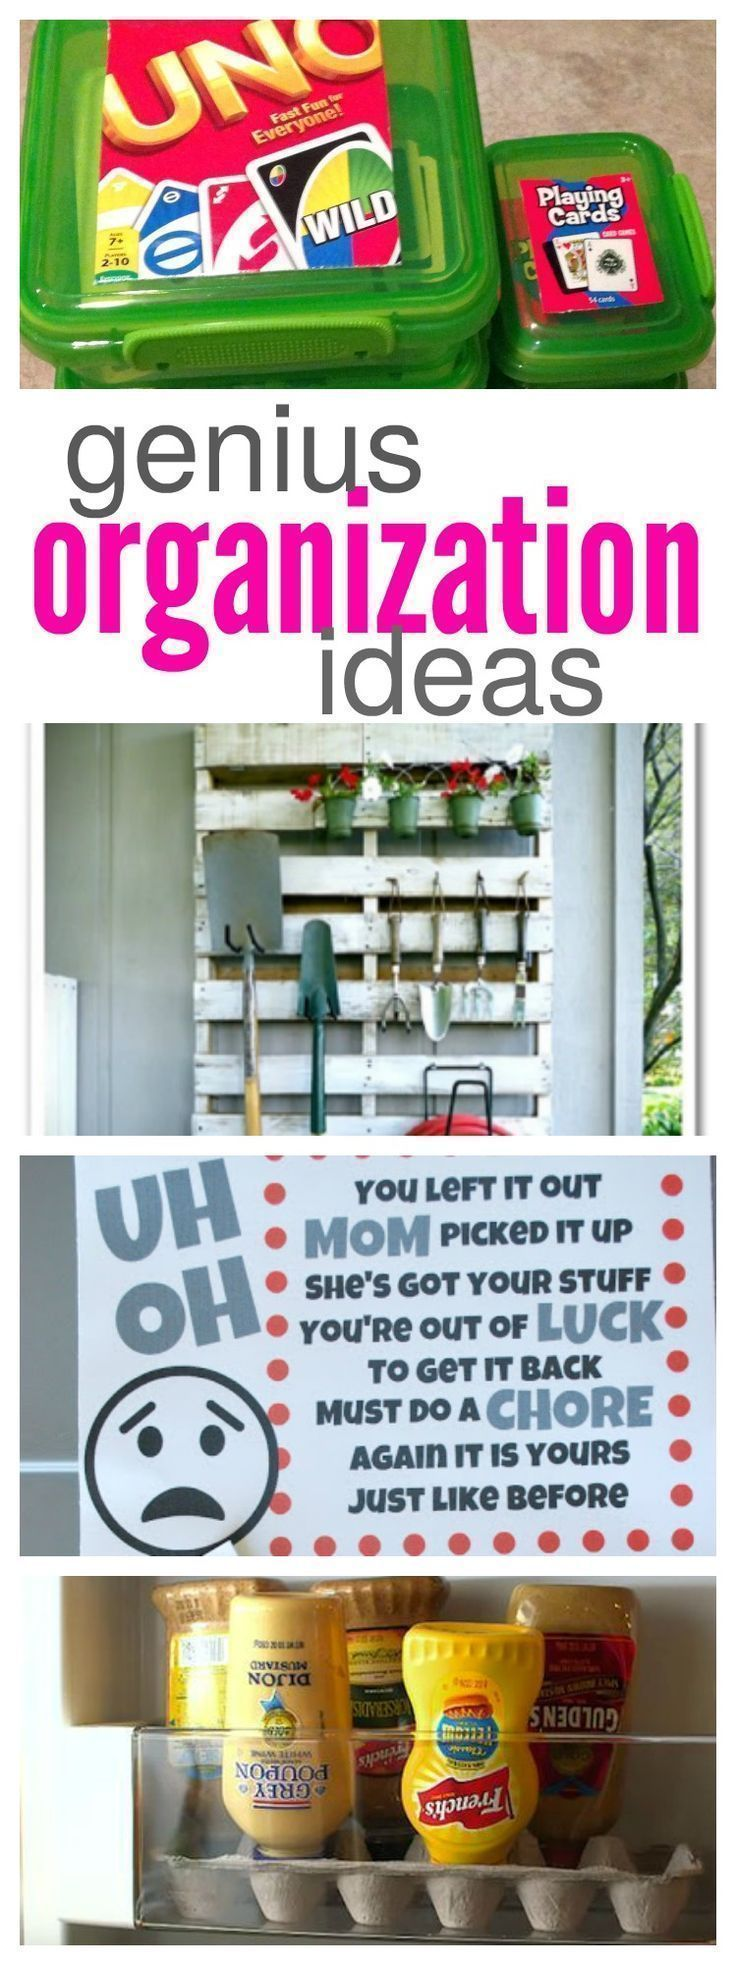 Genius Organization Ideas You NEED #summerhomeorganization With the end of the school year upon us and summer days here to enjoy. I thought it might be a great time to try to get organized, back to school will be here before you know it so take any chance you get now to clean and organize your home! Click the back and … #summerhomeorganization Genius Organization Ideas You NEED #summerhomeorganization With the end of the school year upon us and summer days here to enjoy. I thought it might be #summerhomeorganization